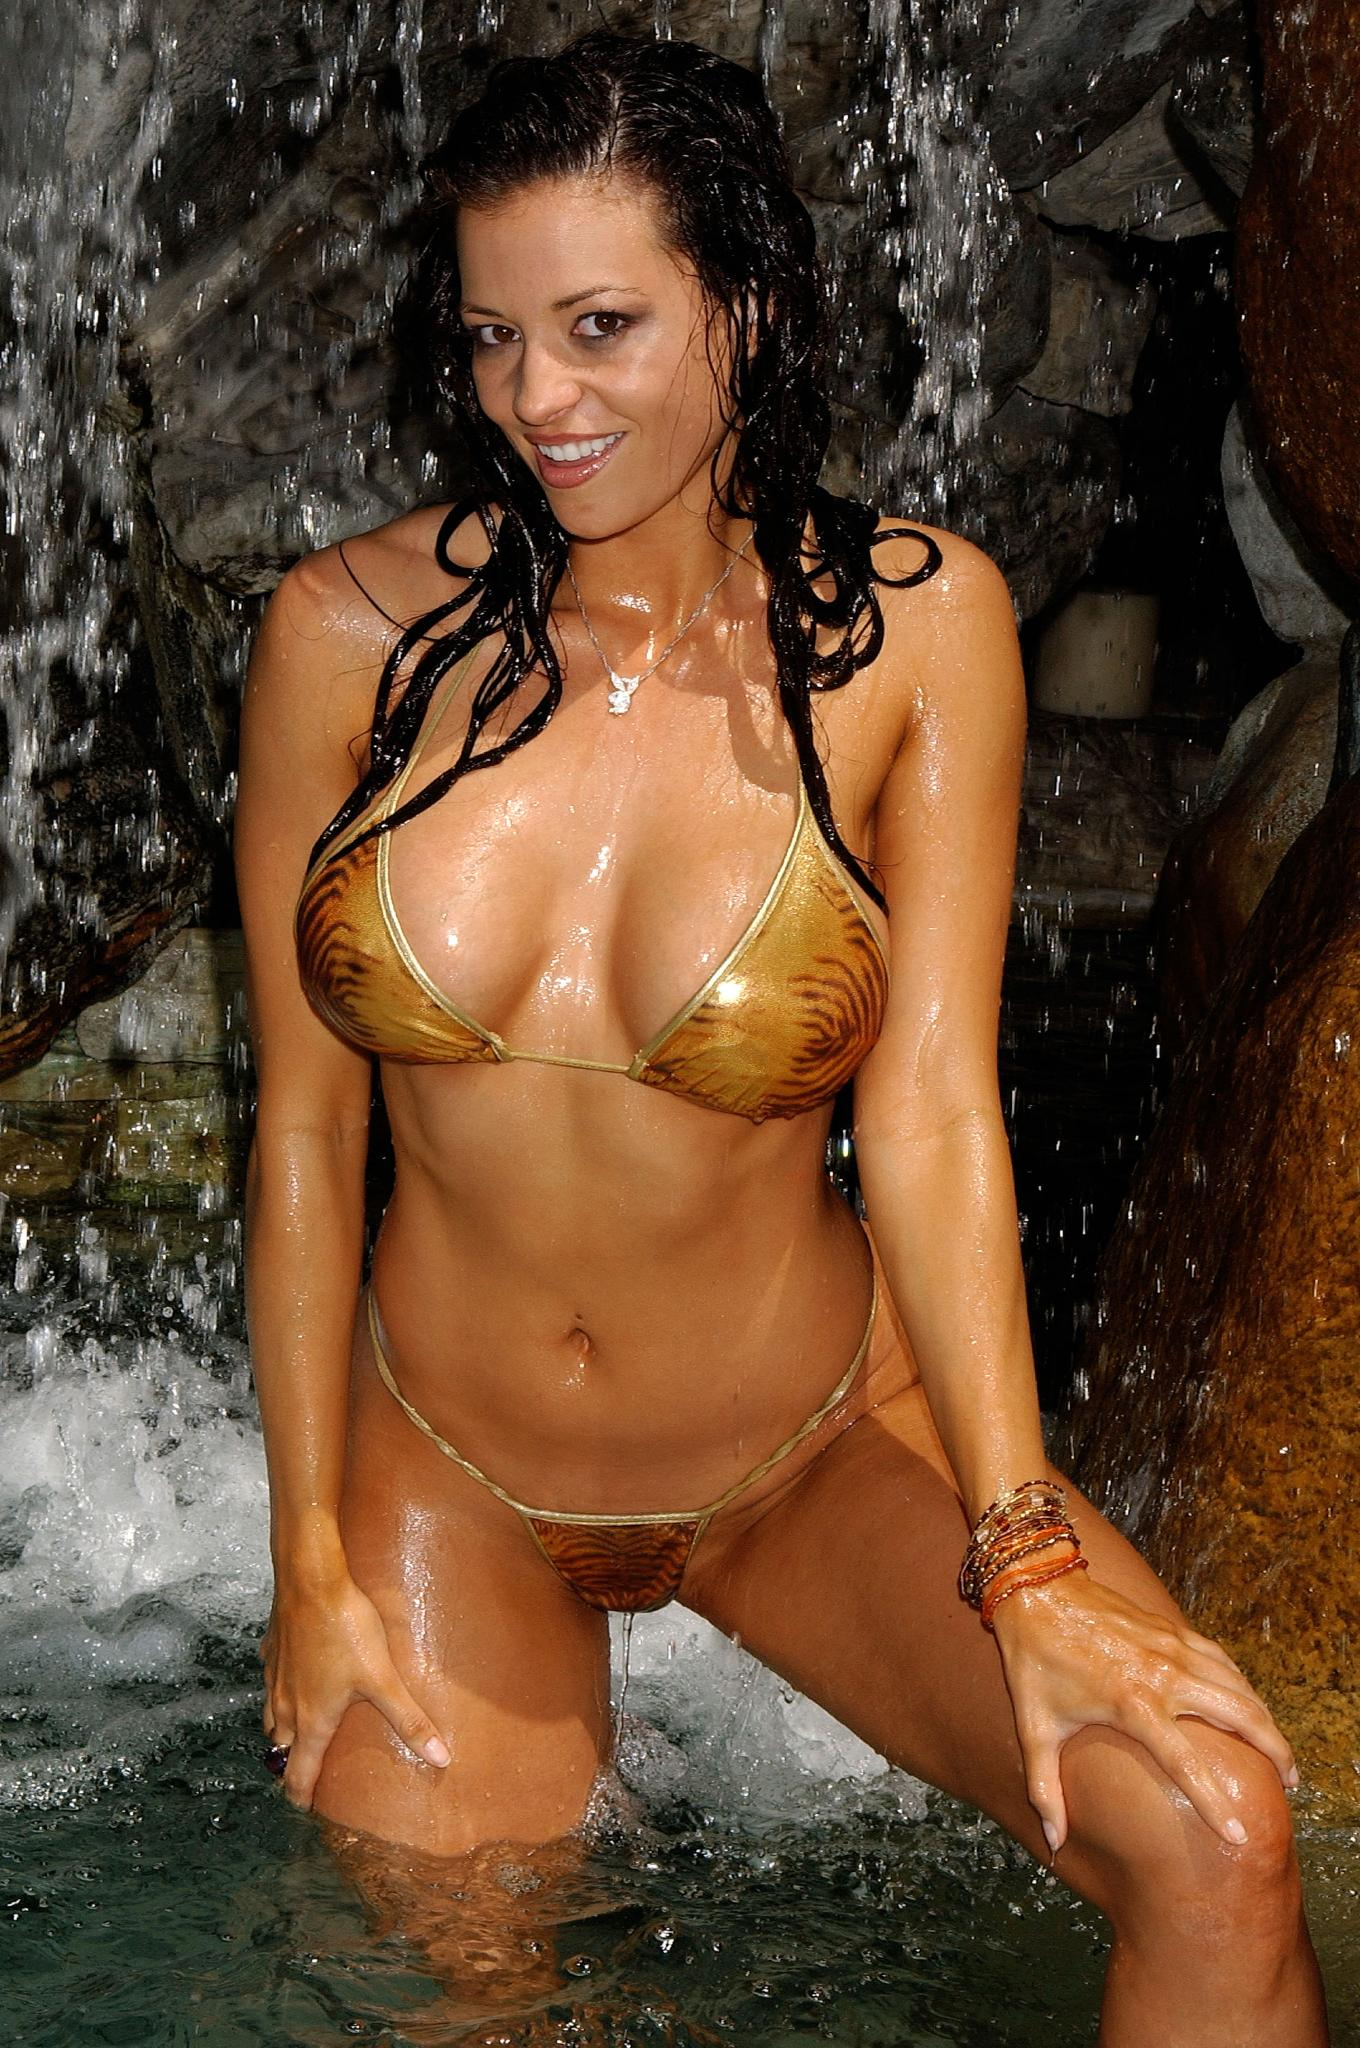 candice michelle nude playboy pictures  94212